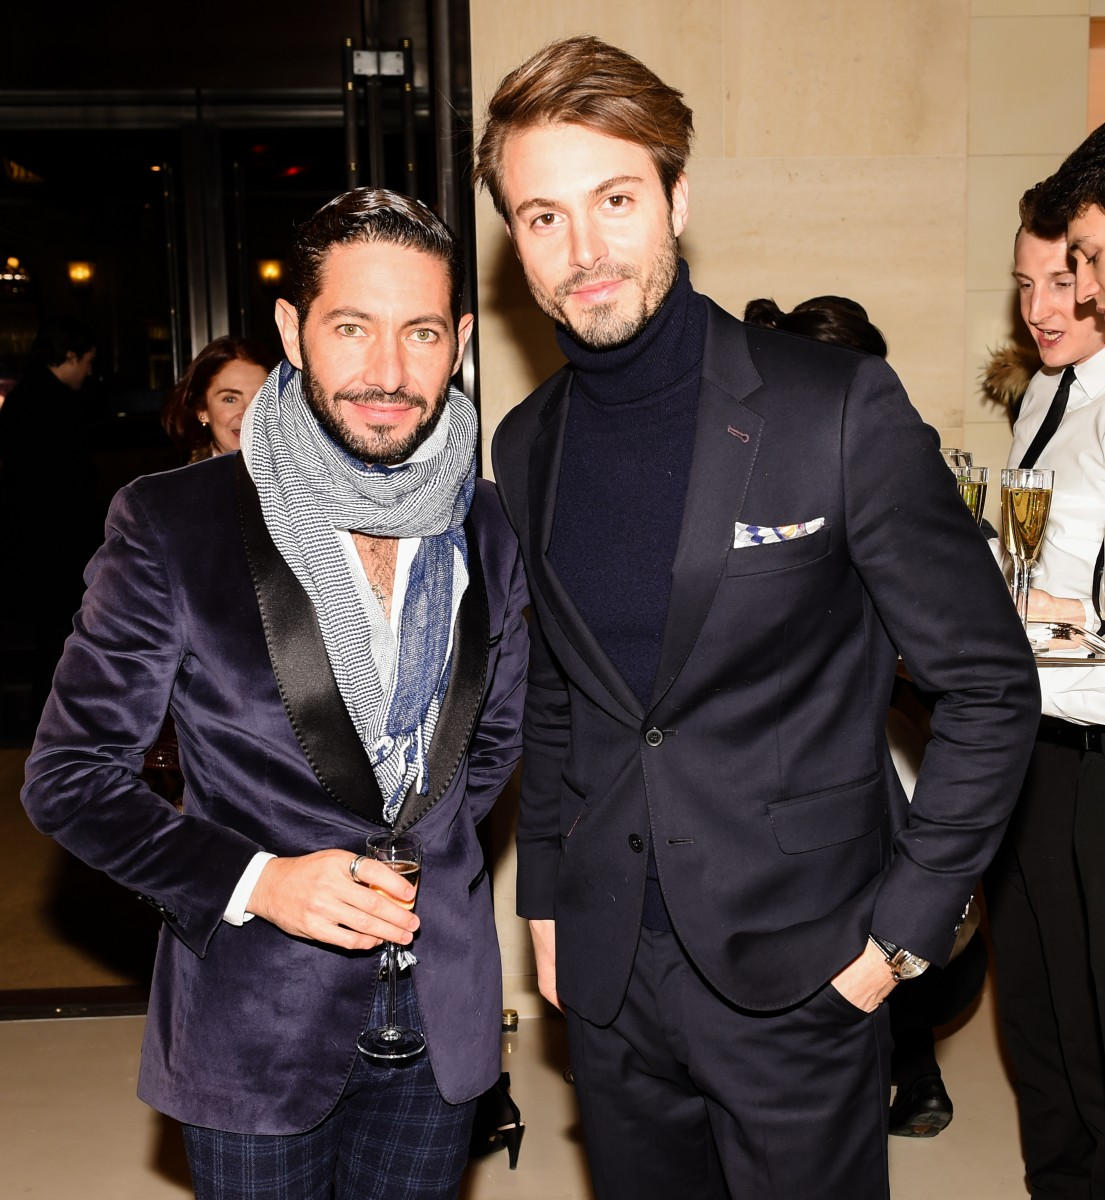 Louis Vuitton Fifth Avenue Cocktail with Peter Marino